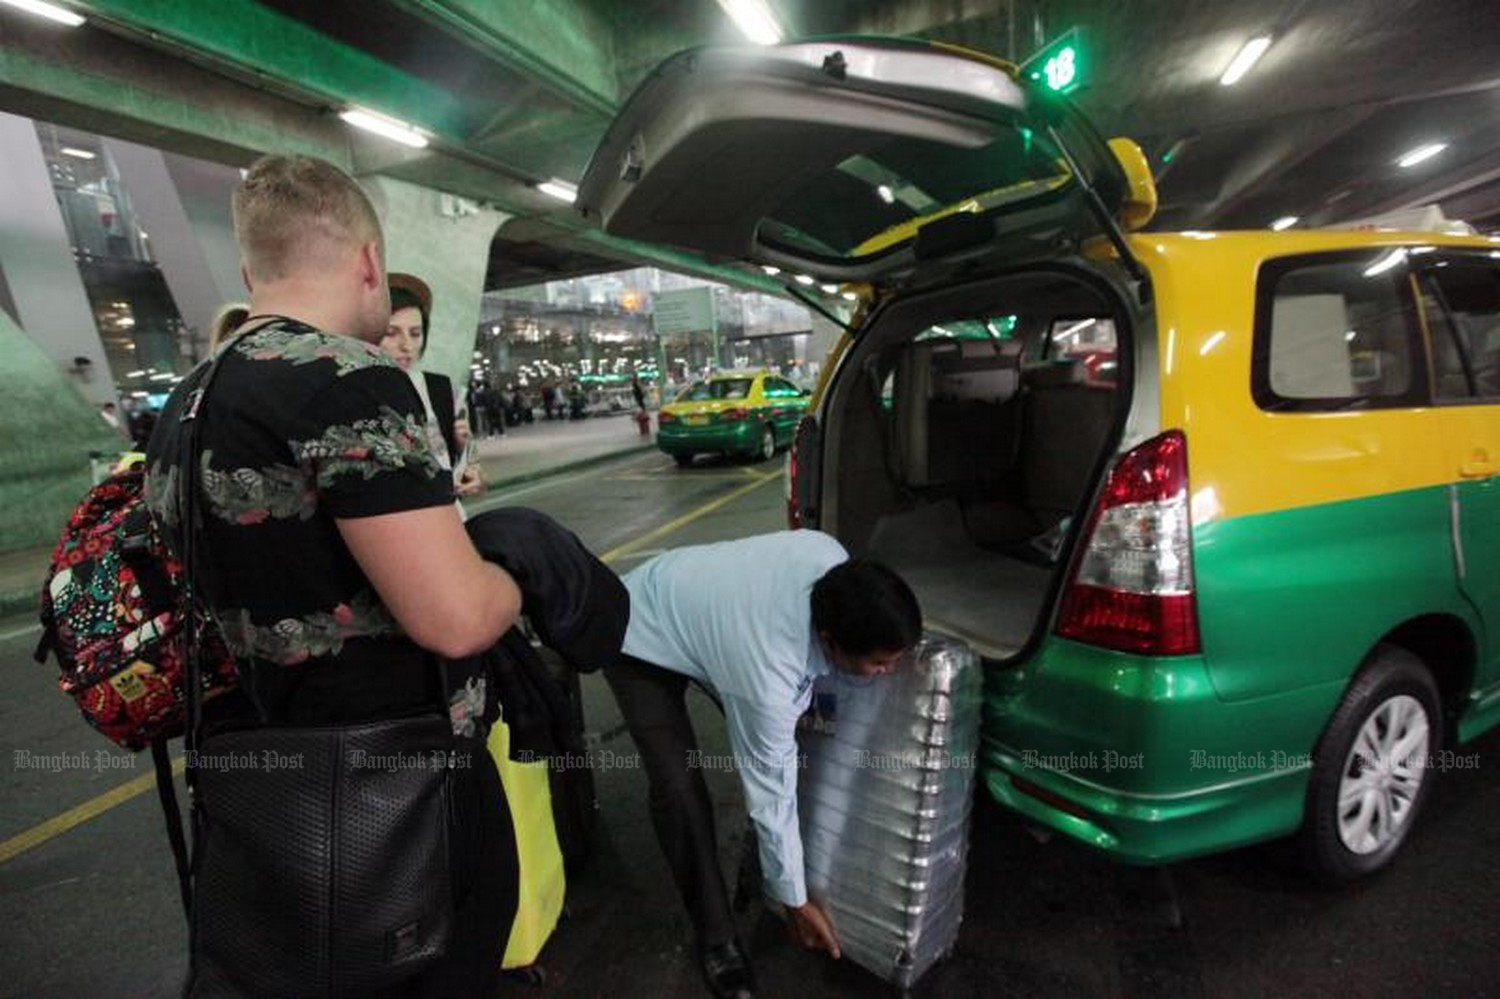 The cost of travelling to and from Suvarnabhumi and Don Mueang airports has gone up again, with taxis now levying new charges on luggage. (File photo Bangkok Post)